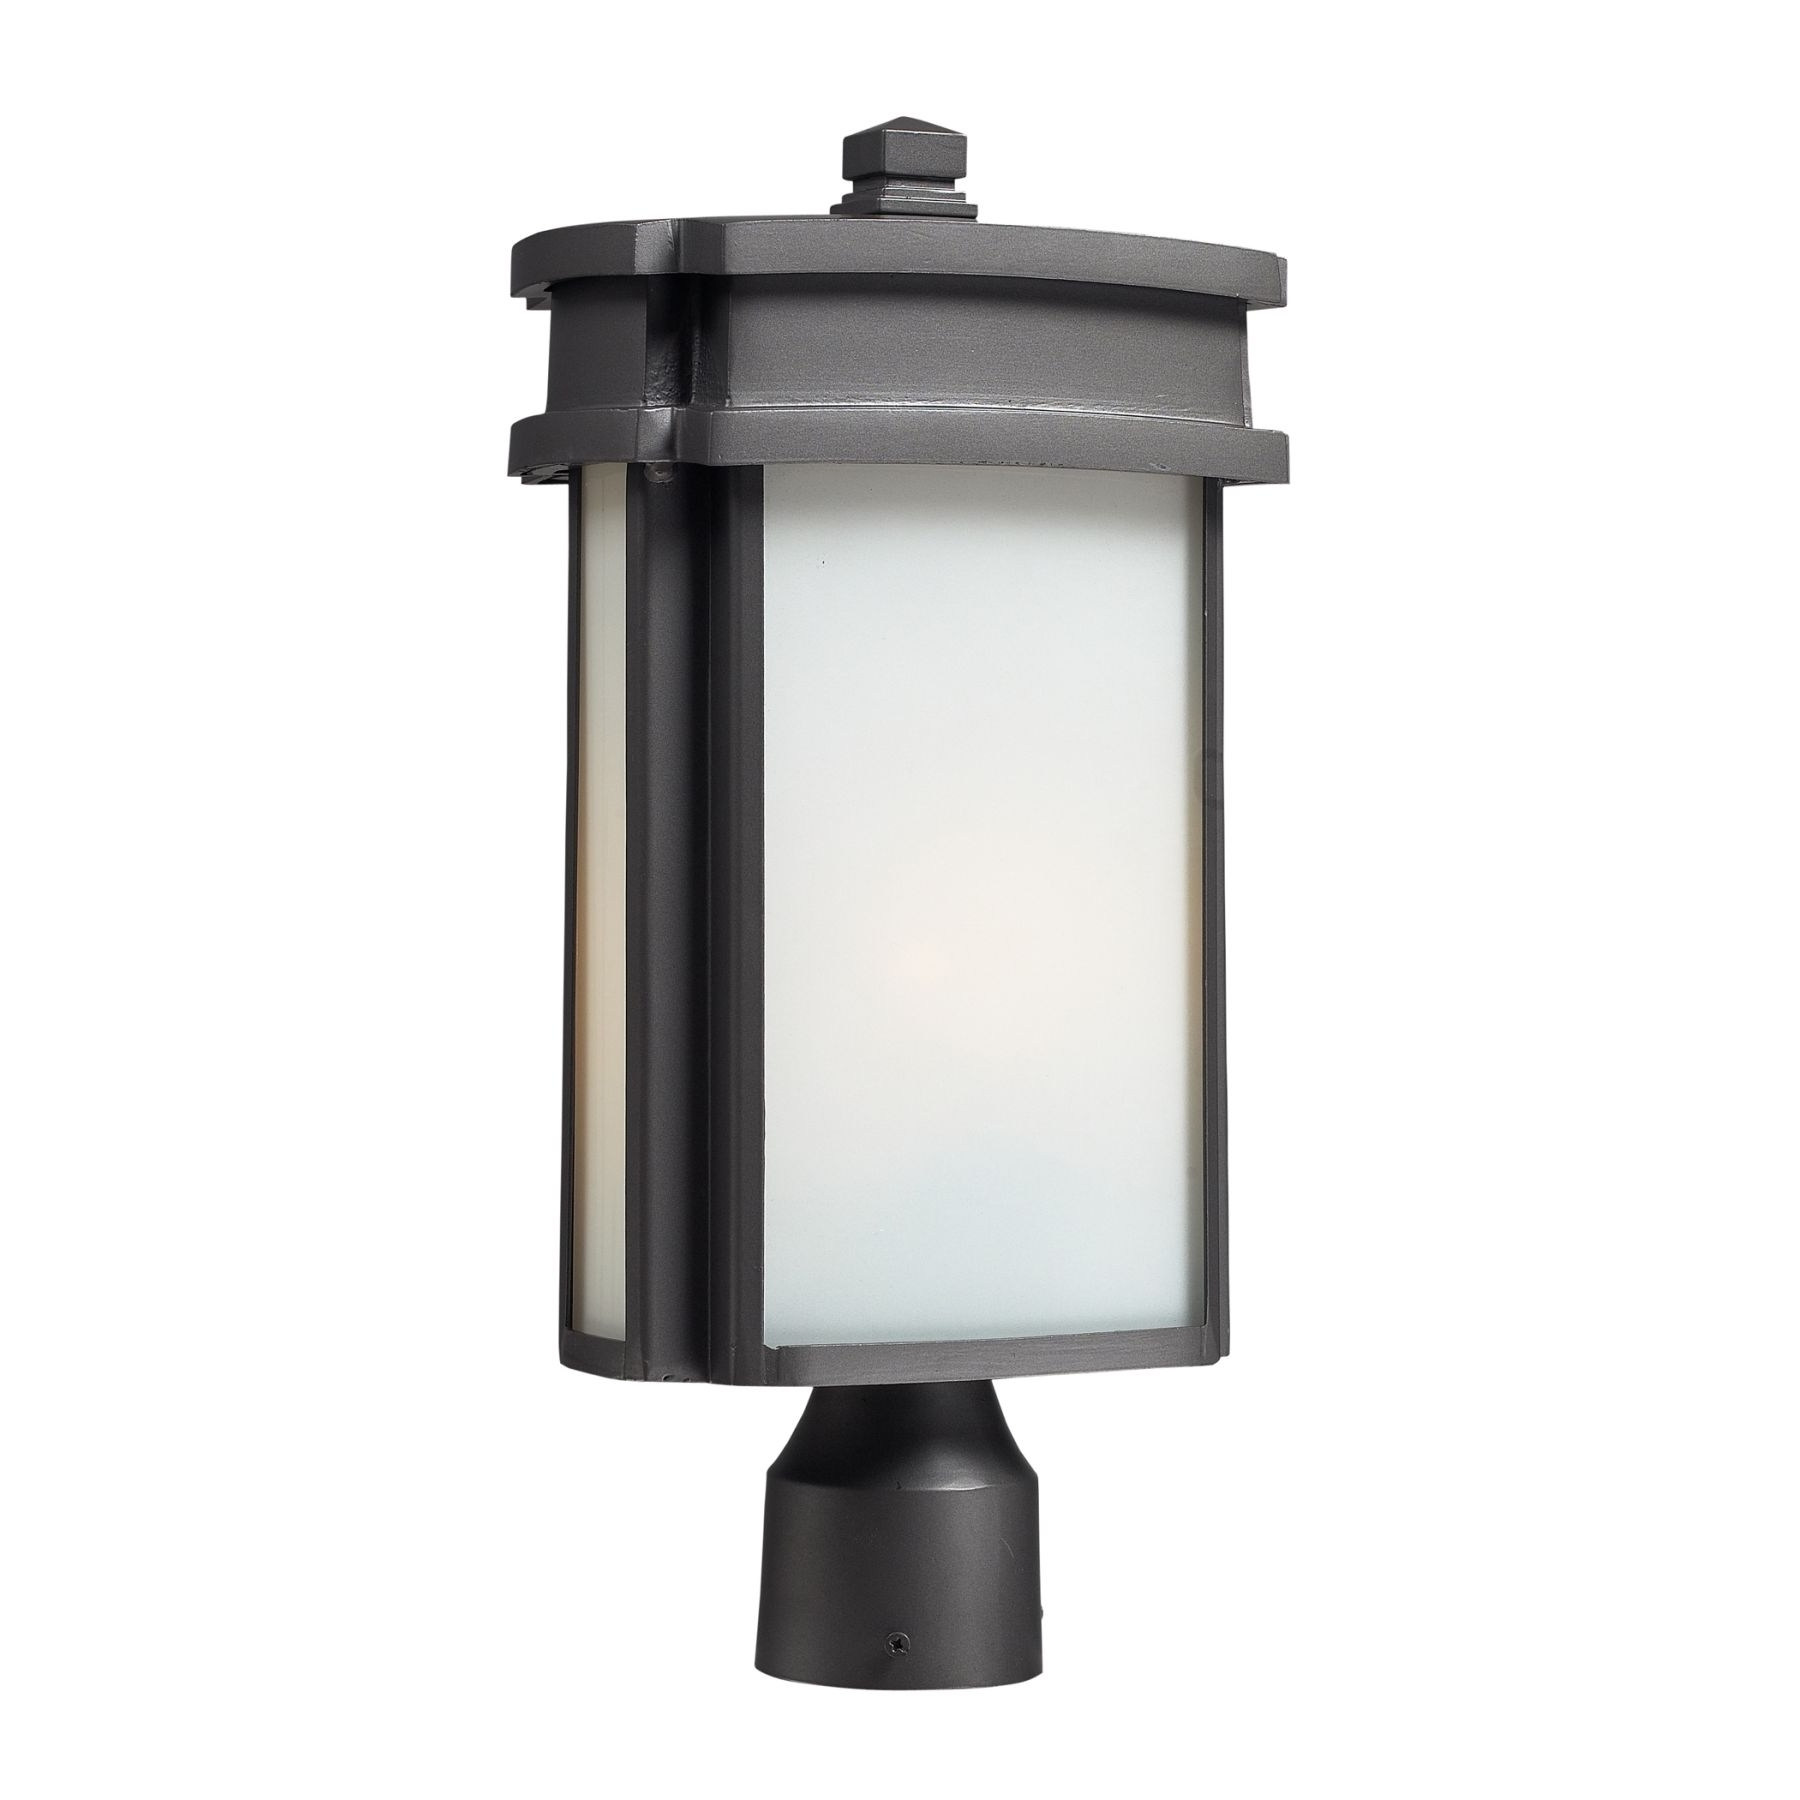 Modern Outdoor Post Lighting Throughout Most Up To Date Mid Century Modern Outdoor Post Lighting • Outdoor Lighting (View 9 of 20)